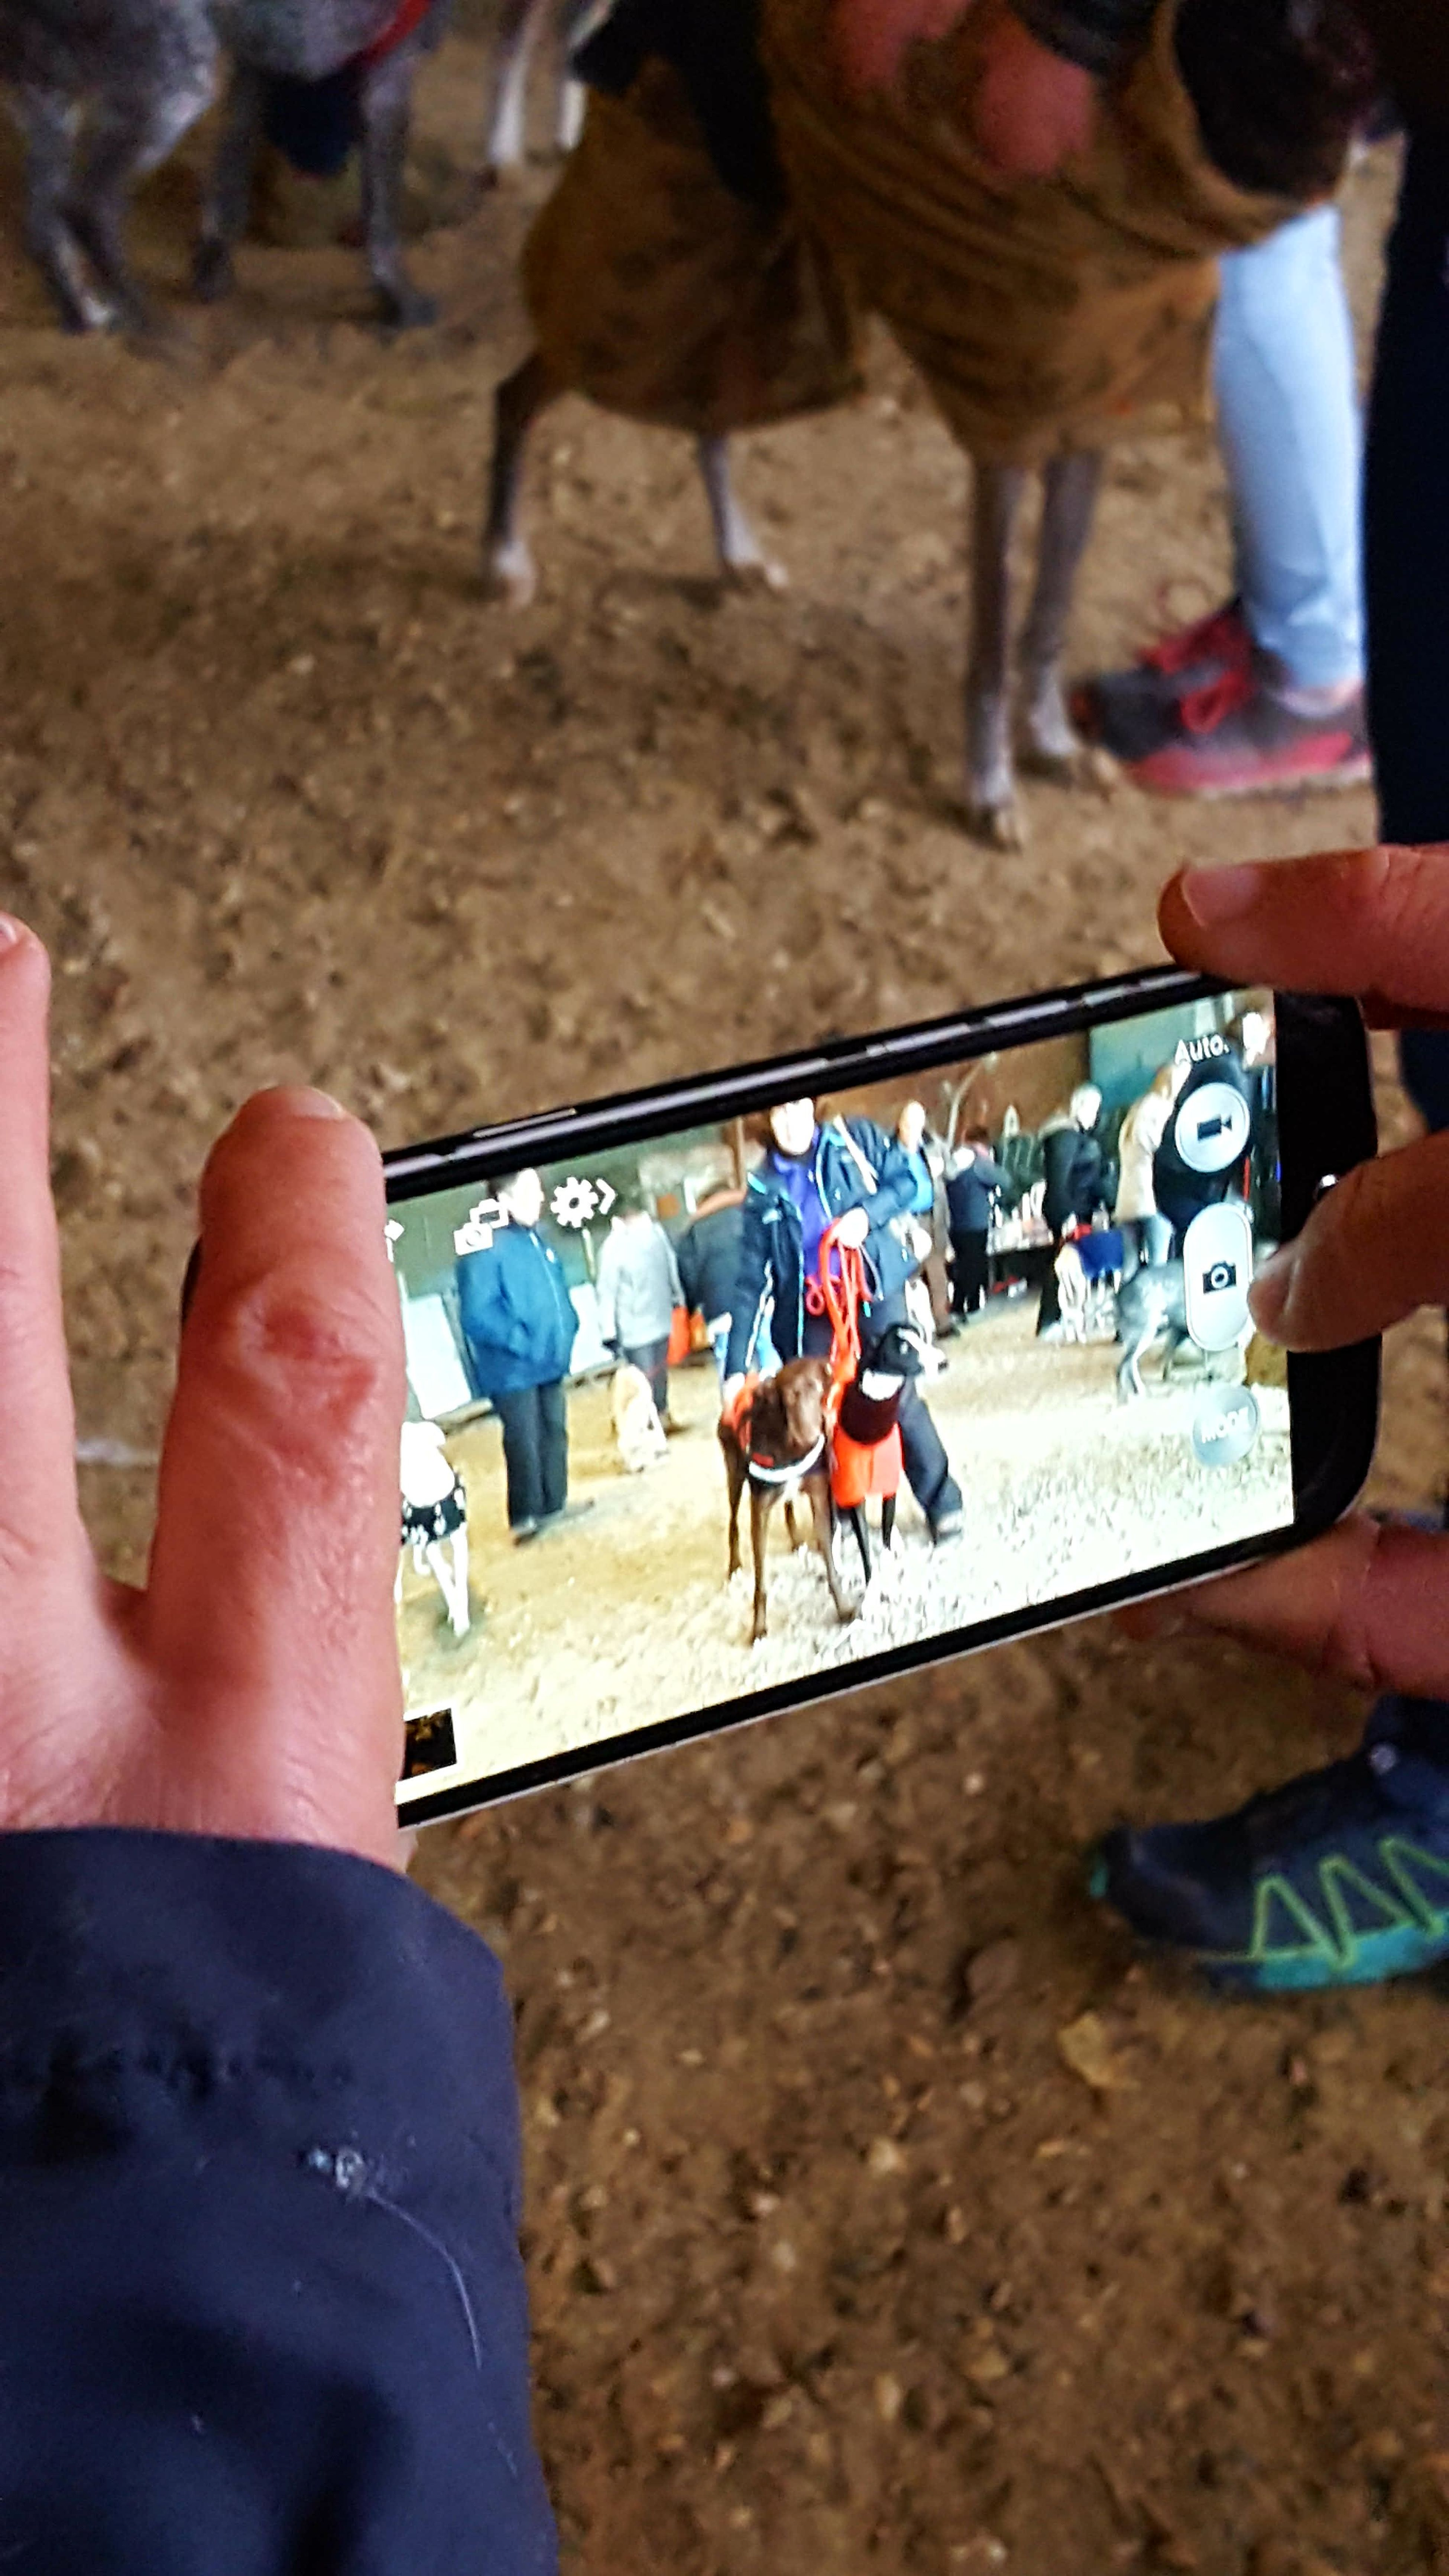 Holding Human Hand Adults Only Human Body Part Women Outdoors Adult People Men Close-up Real People Day City Technology Only Men Beach Low Section Animal Body Part Galgo France Pet Association Pets Dog My Year My View